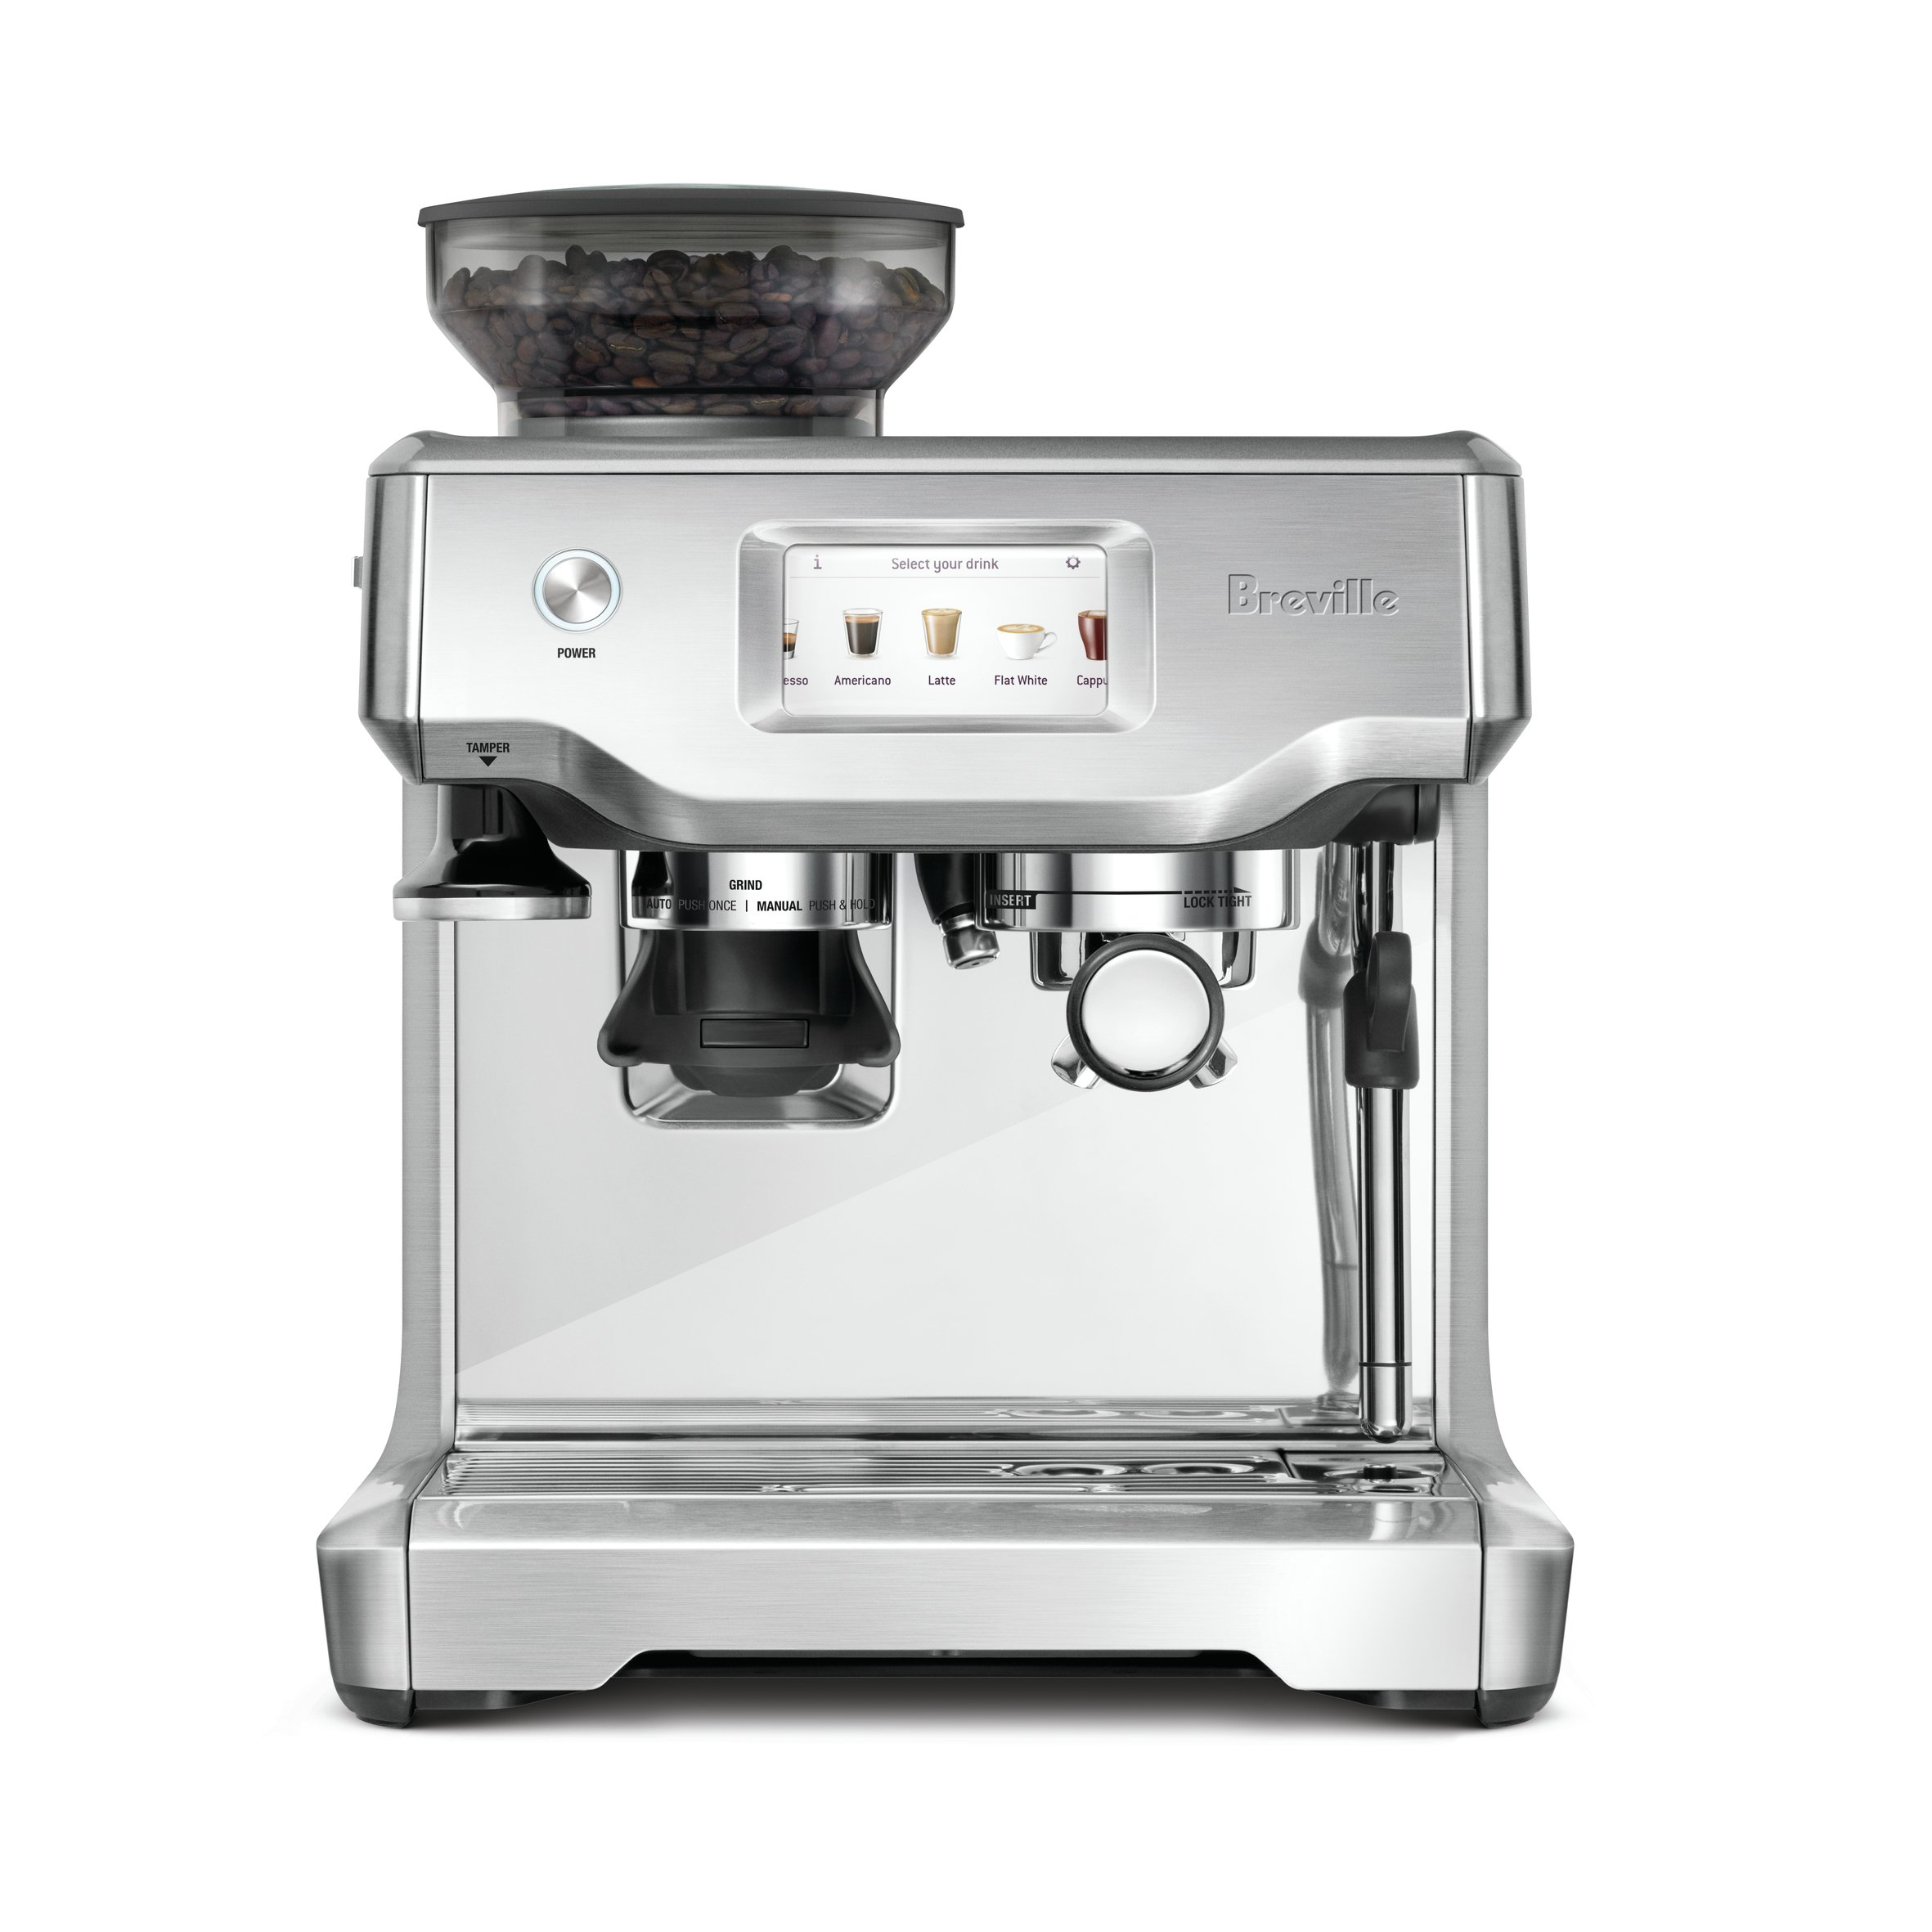 Breville BES880BSS Barista Touch Espresso Maker, Stainless Steel by Breville